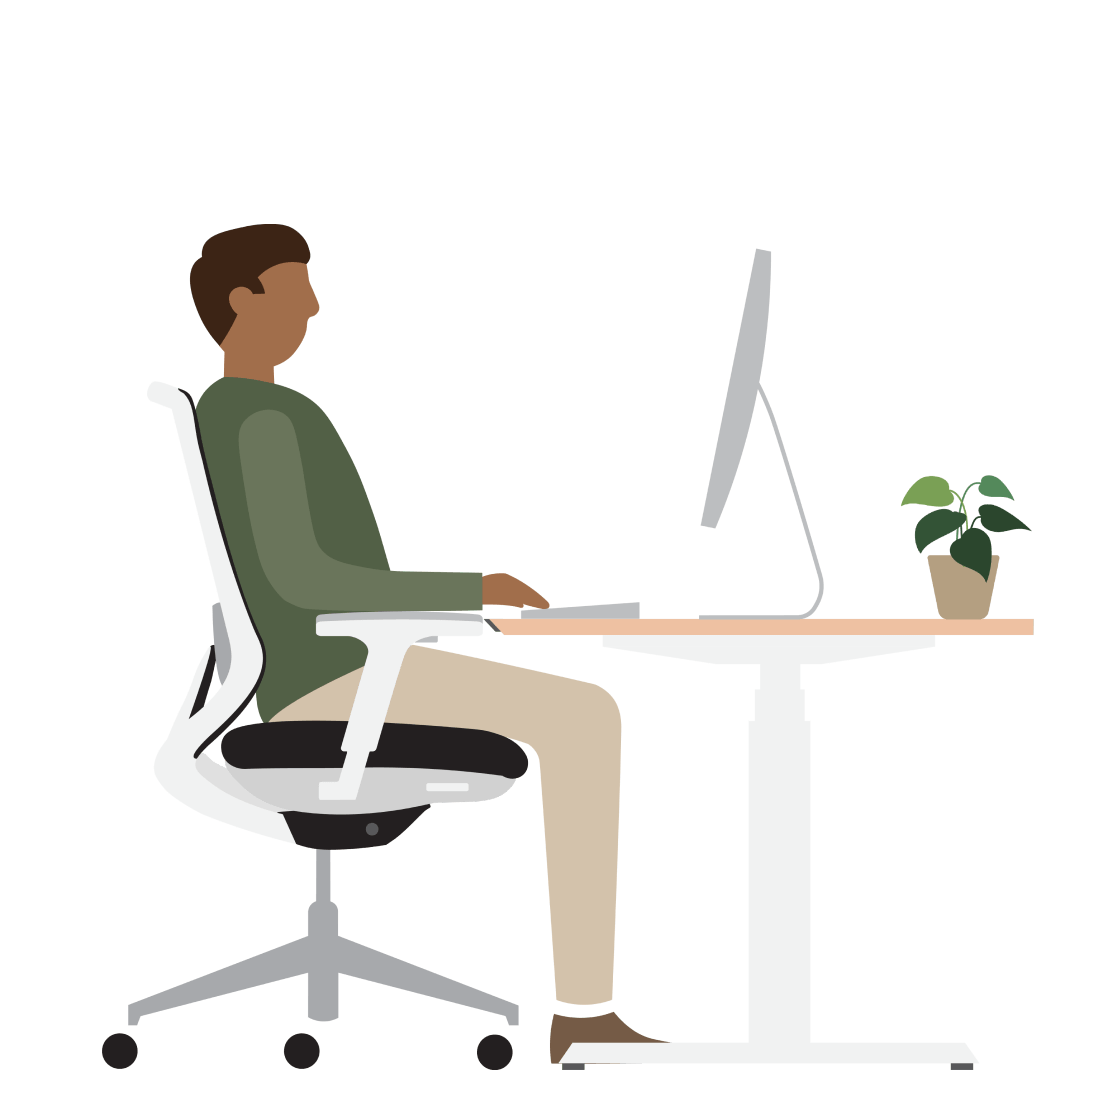 An illustration of a man sitting down at a desk